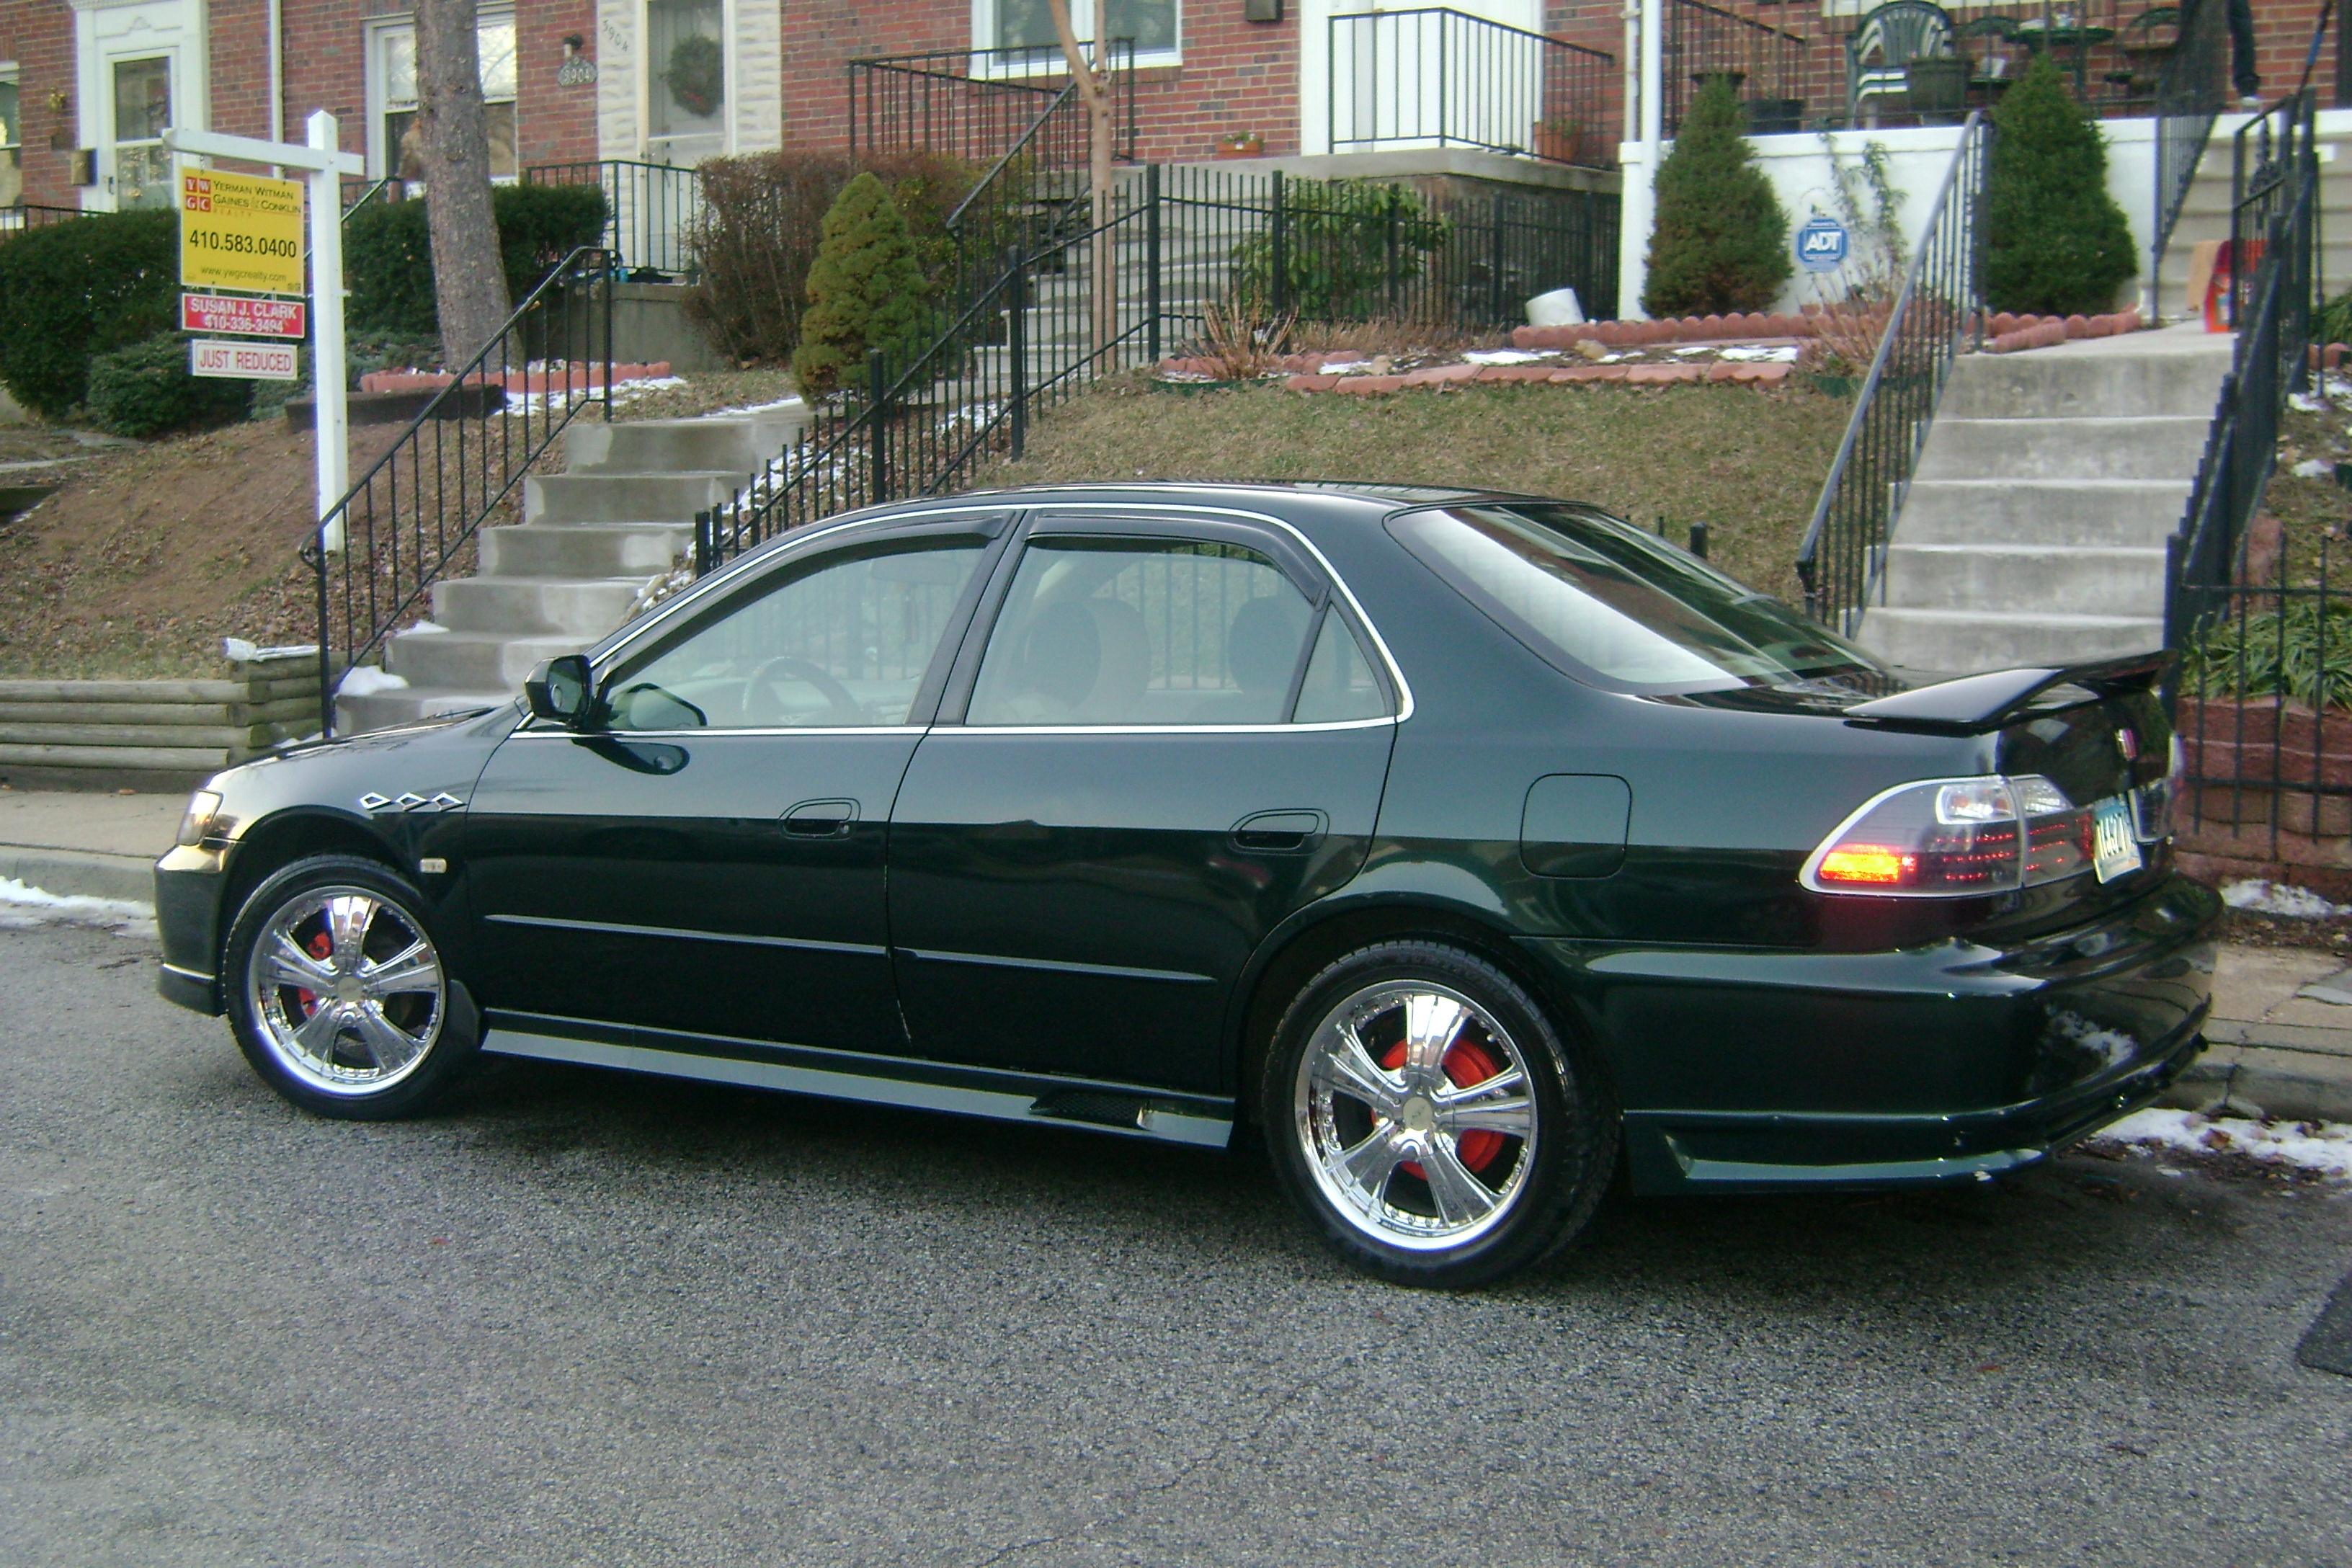 Bull_002 2000 Honda Accord 12420071